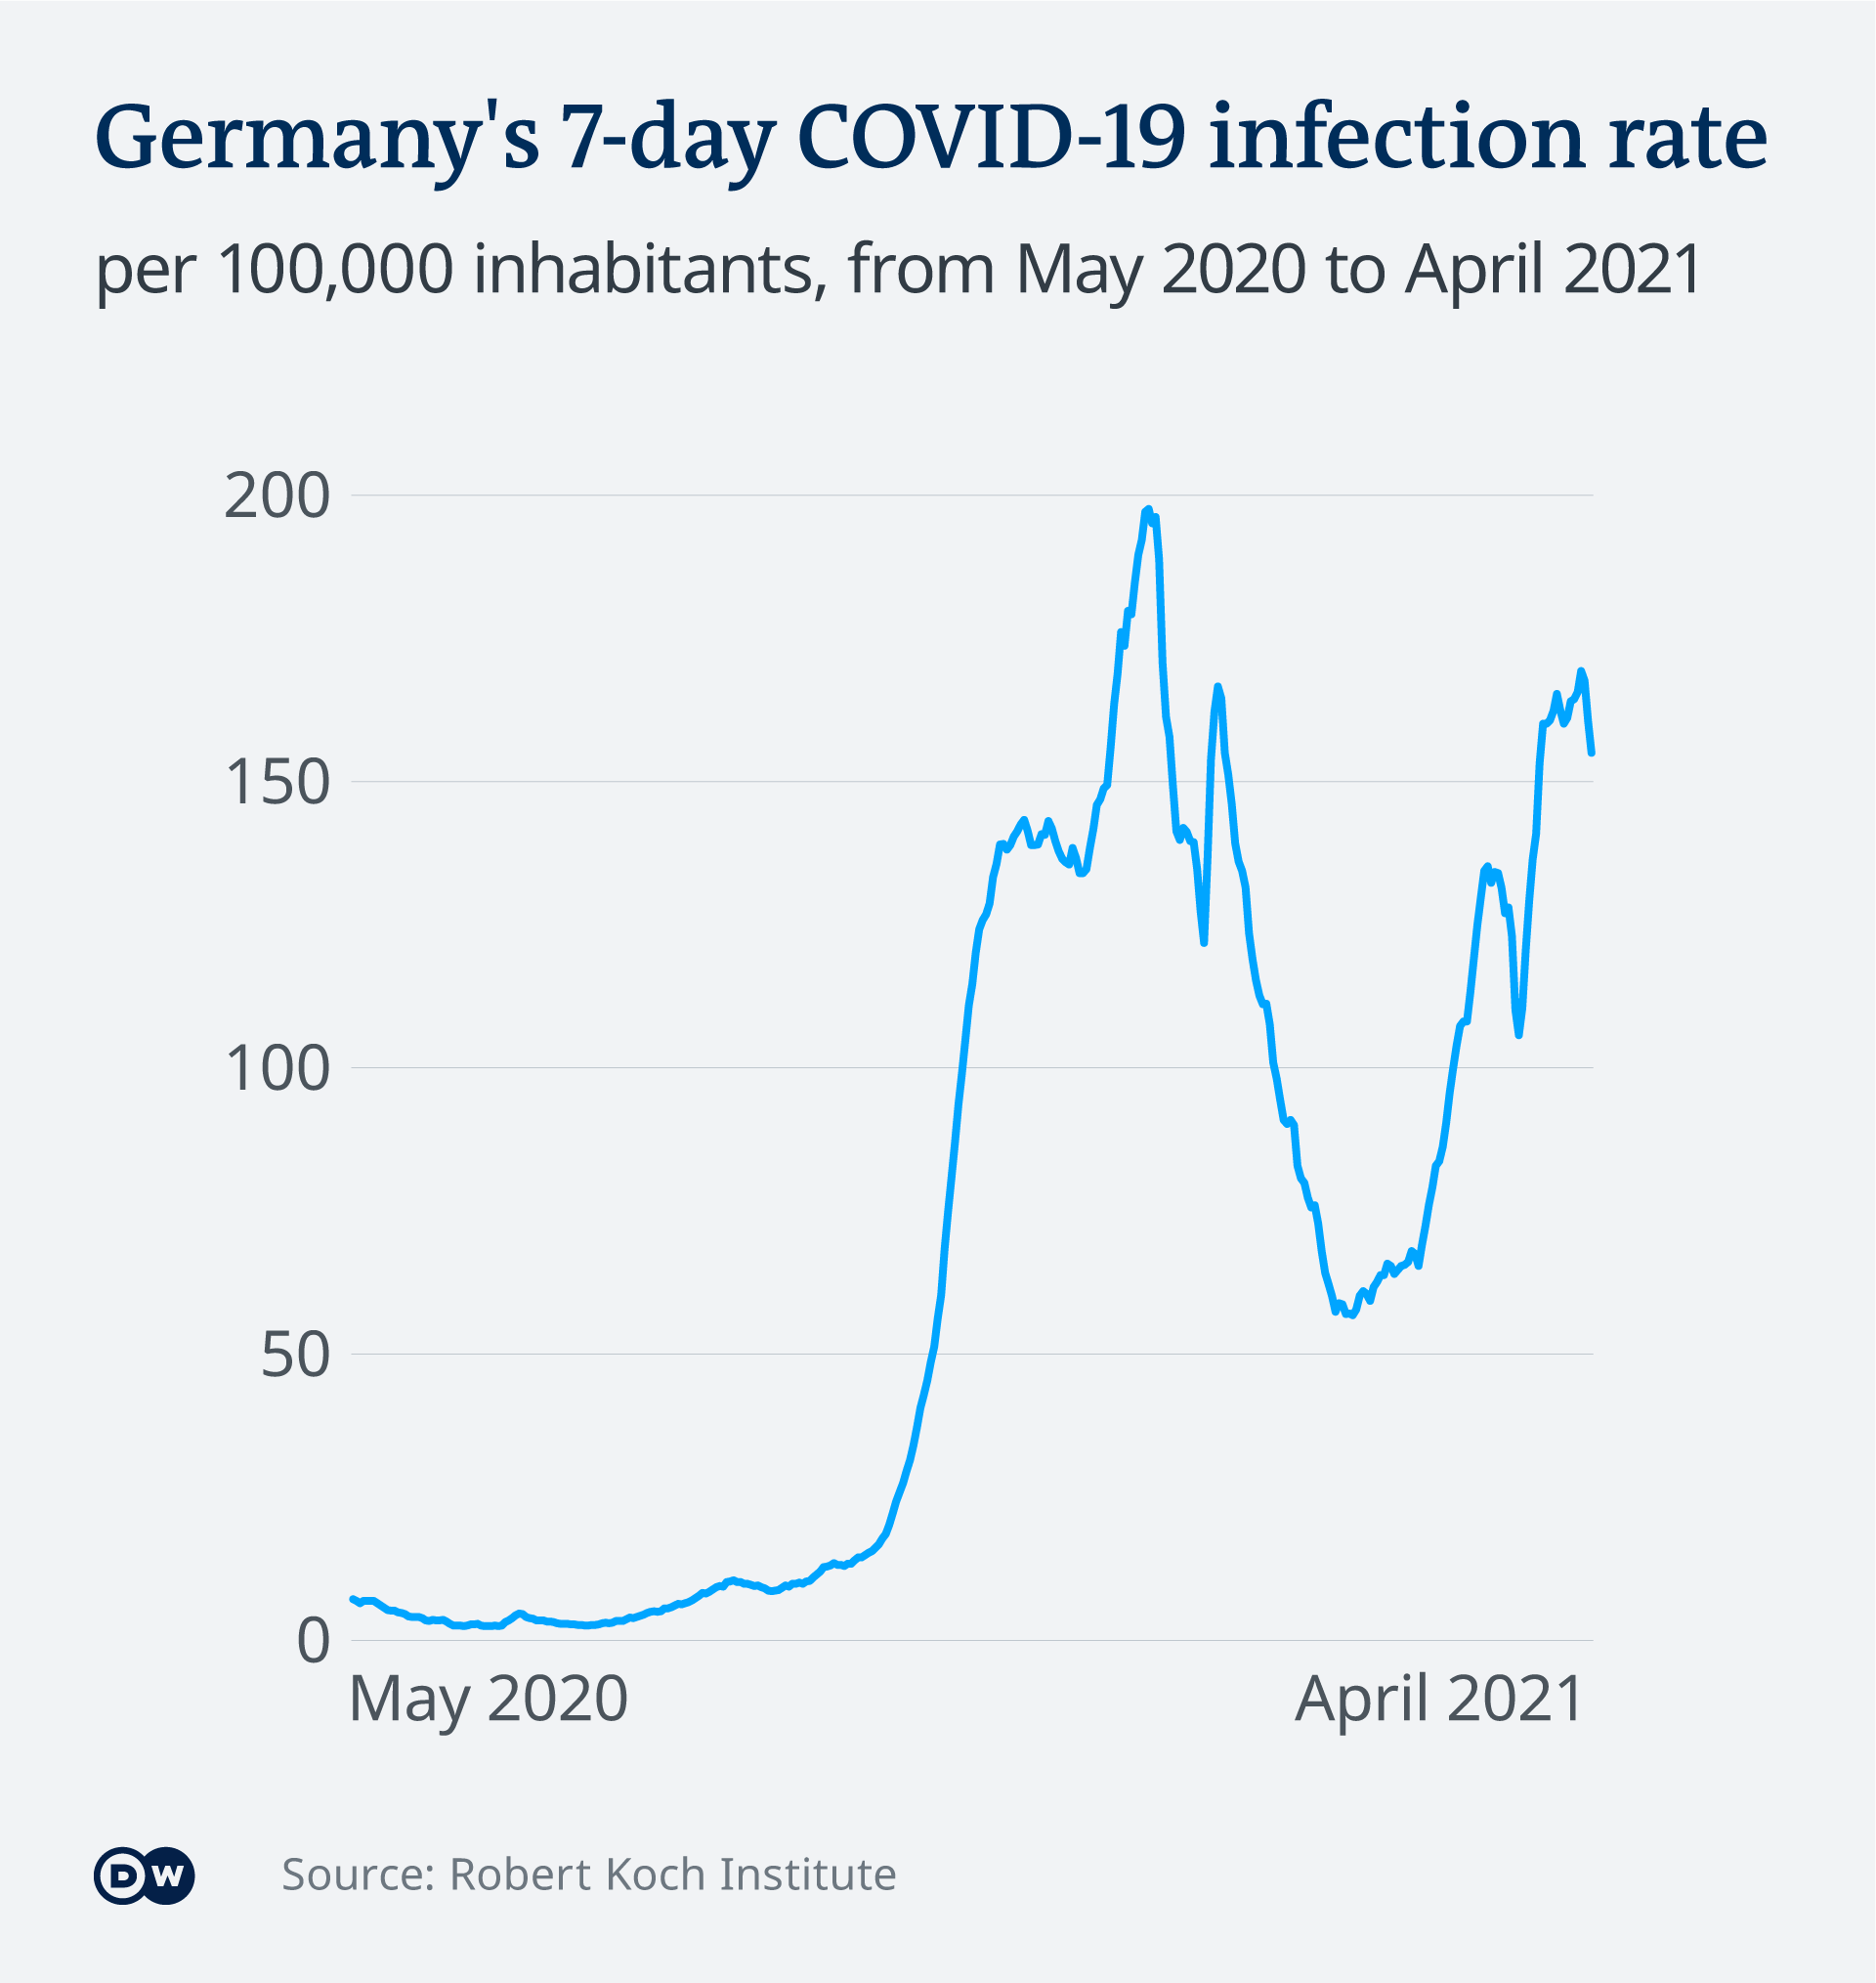 Germany's 7-day COVID-19 infection rate